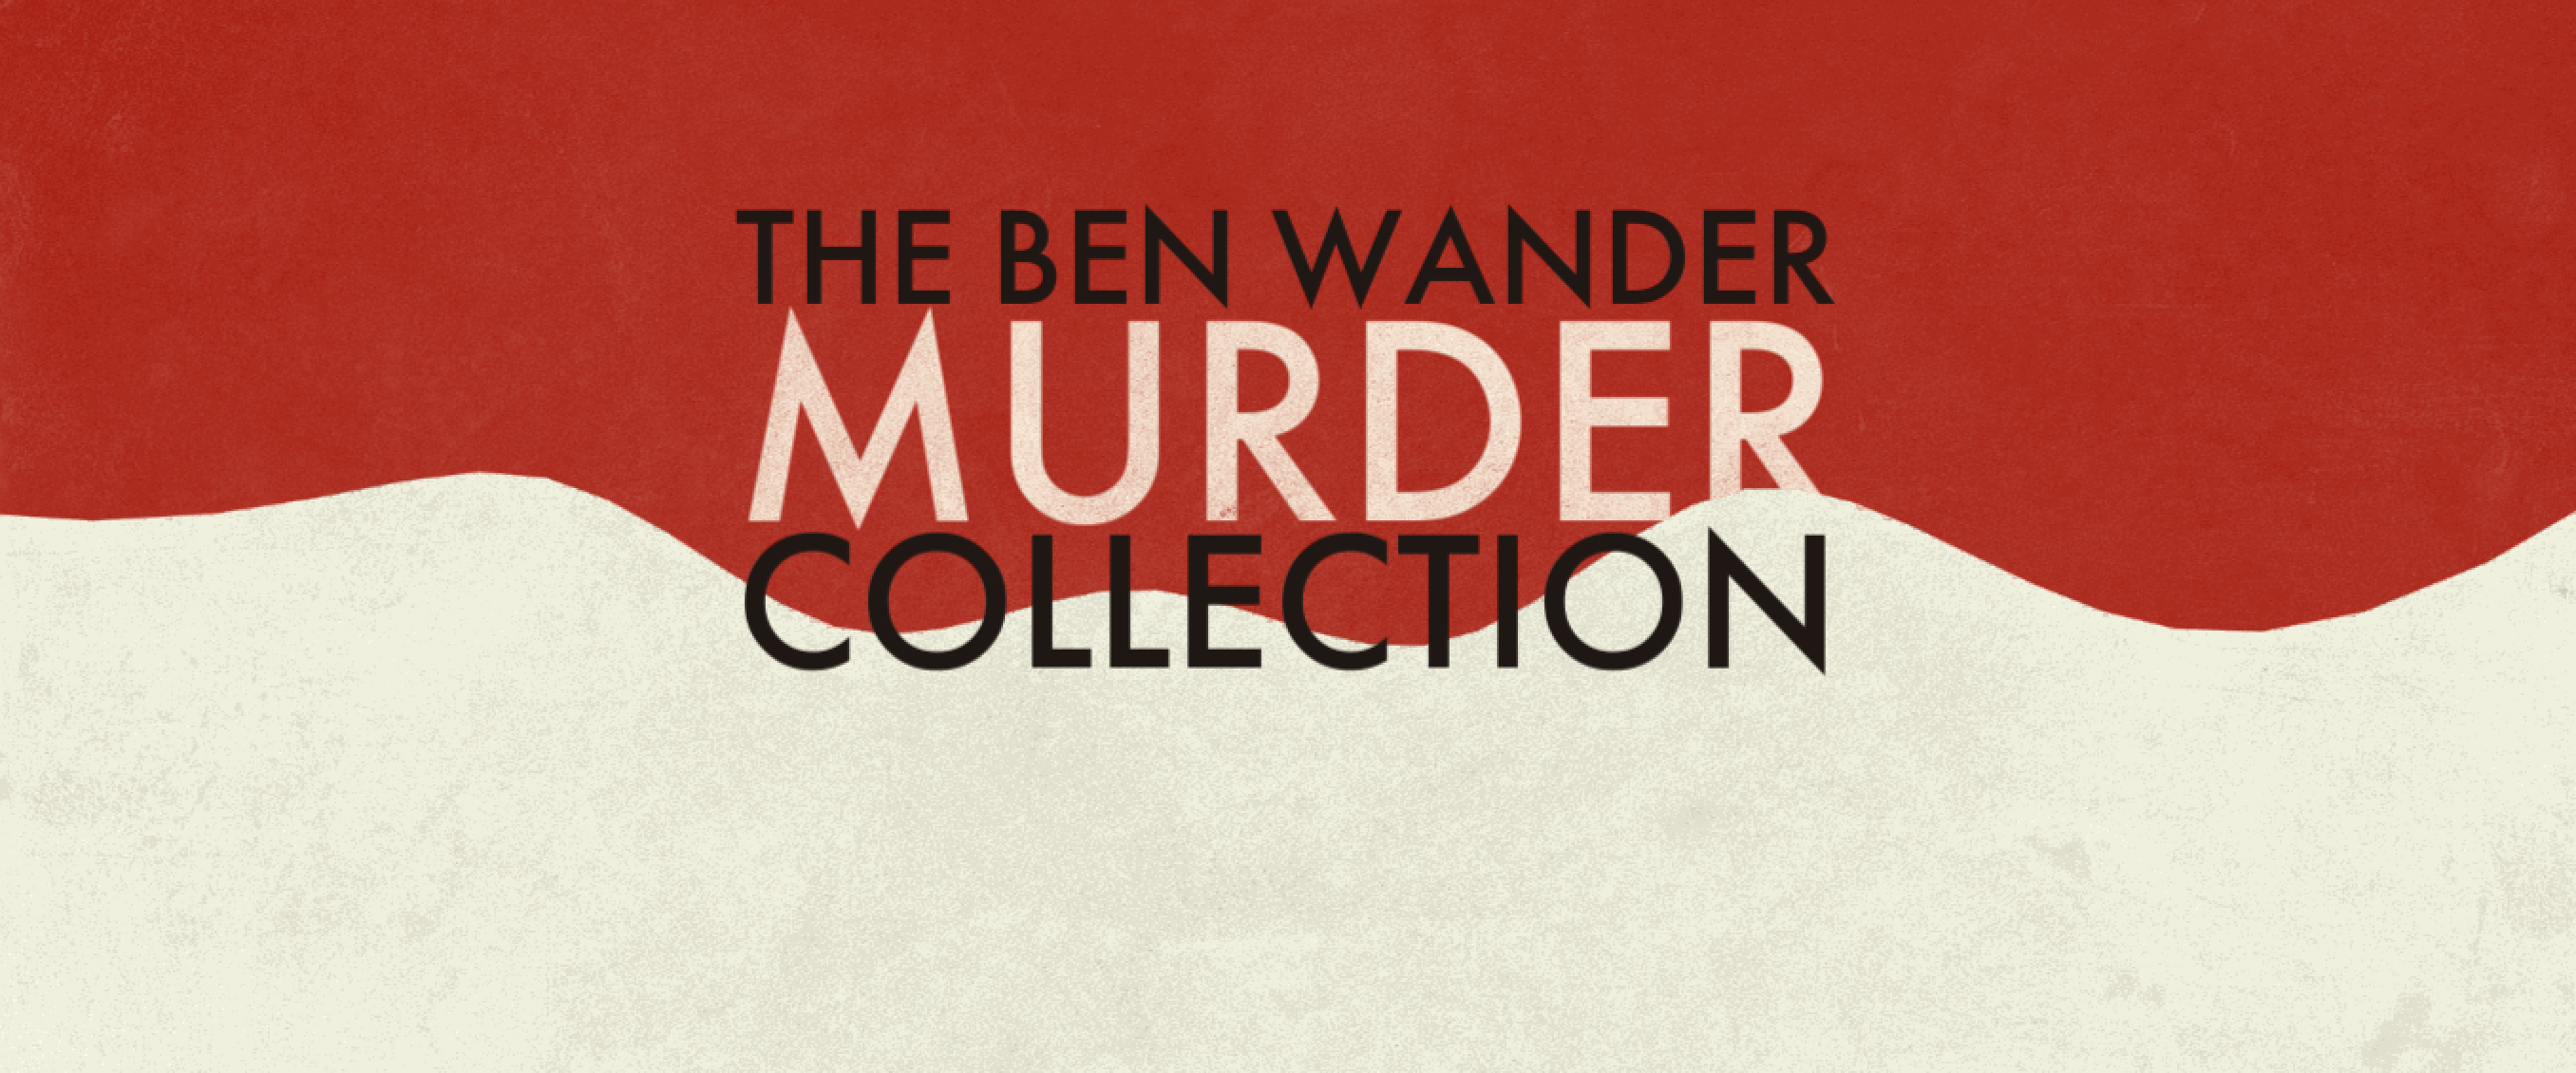 The Ben Wander Murder Collection